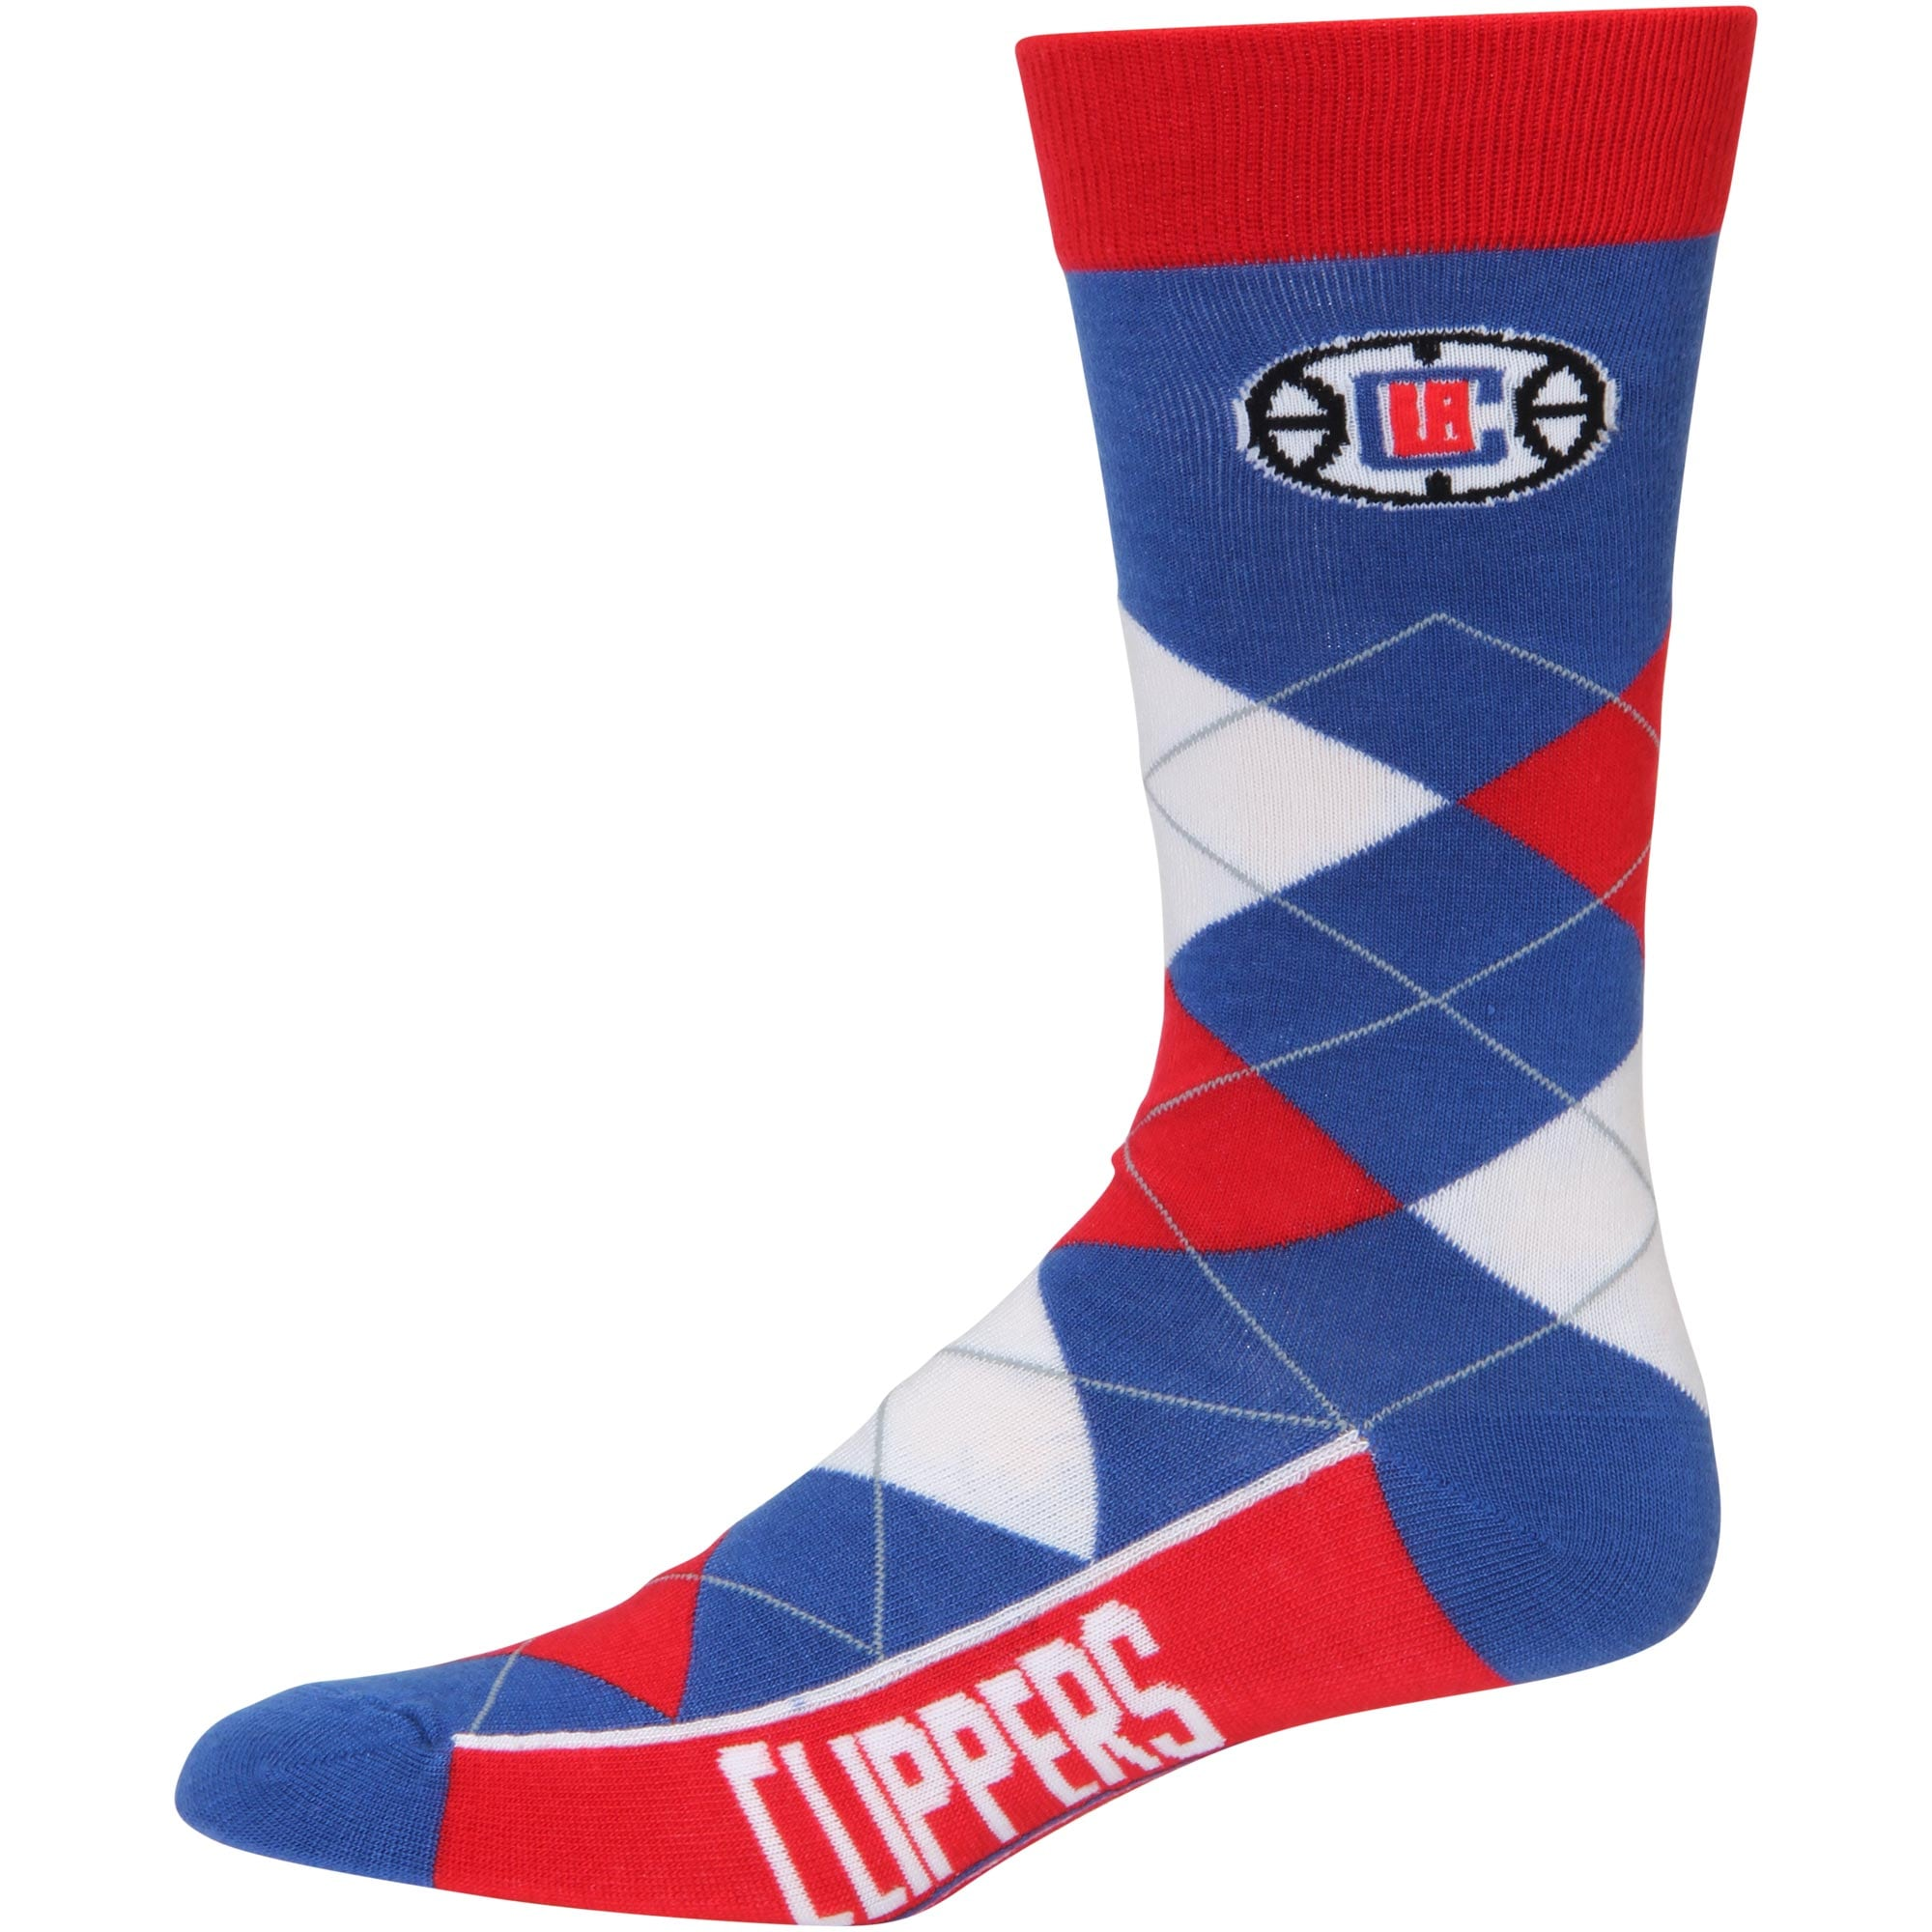 LA Clippers For Bare Feet Argyle Crew Socks